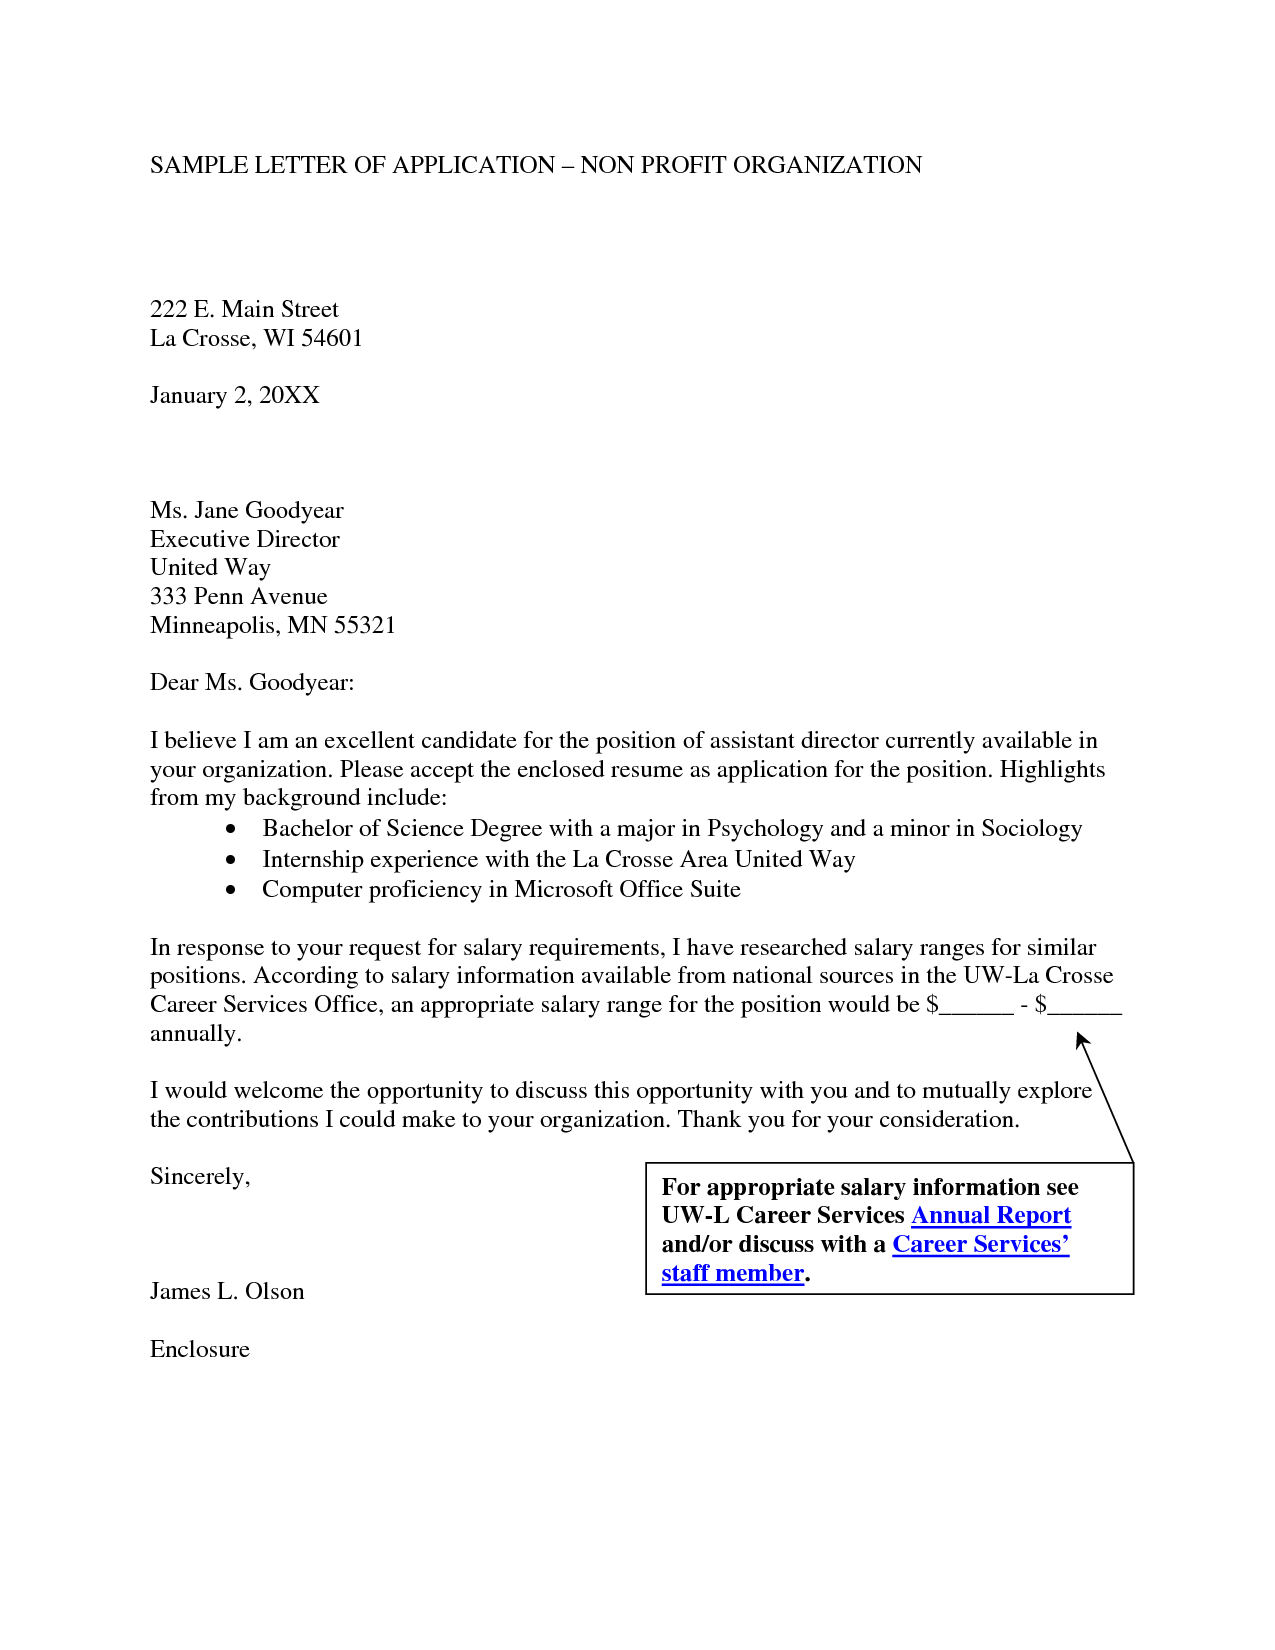 cover letter for non profit board resignation sample member | Home ...